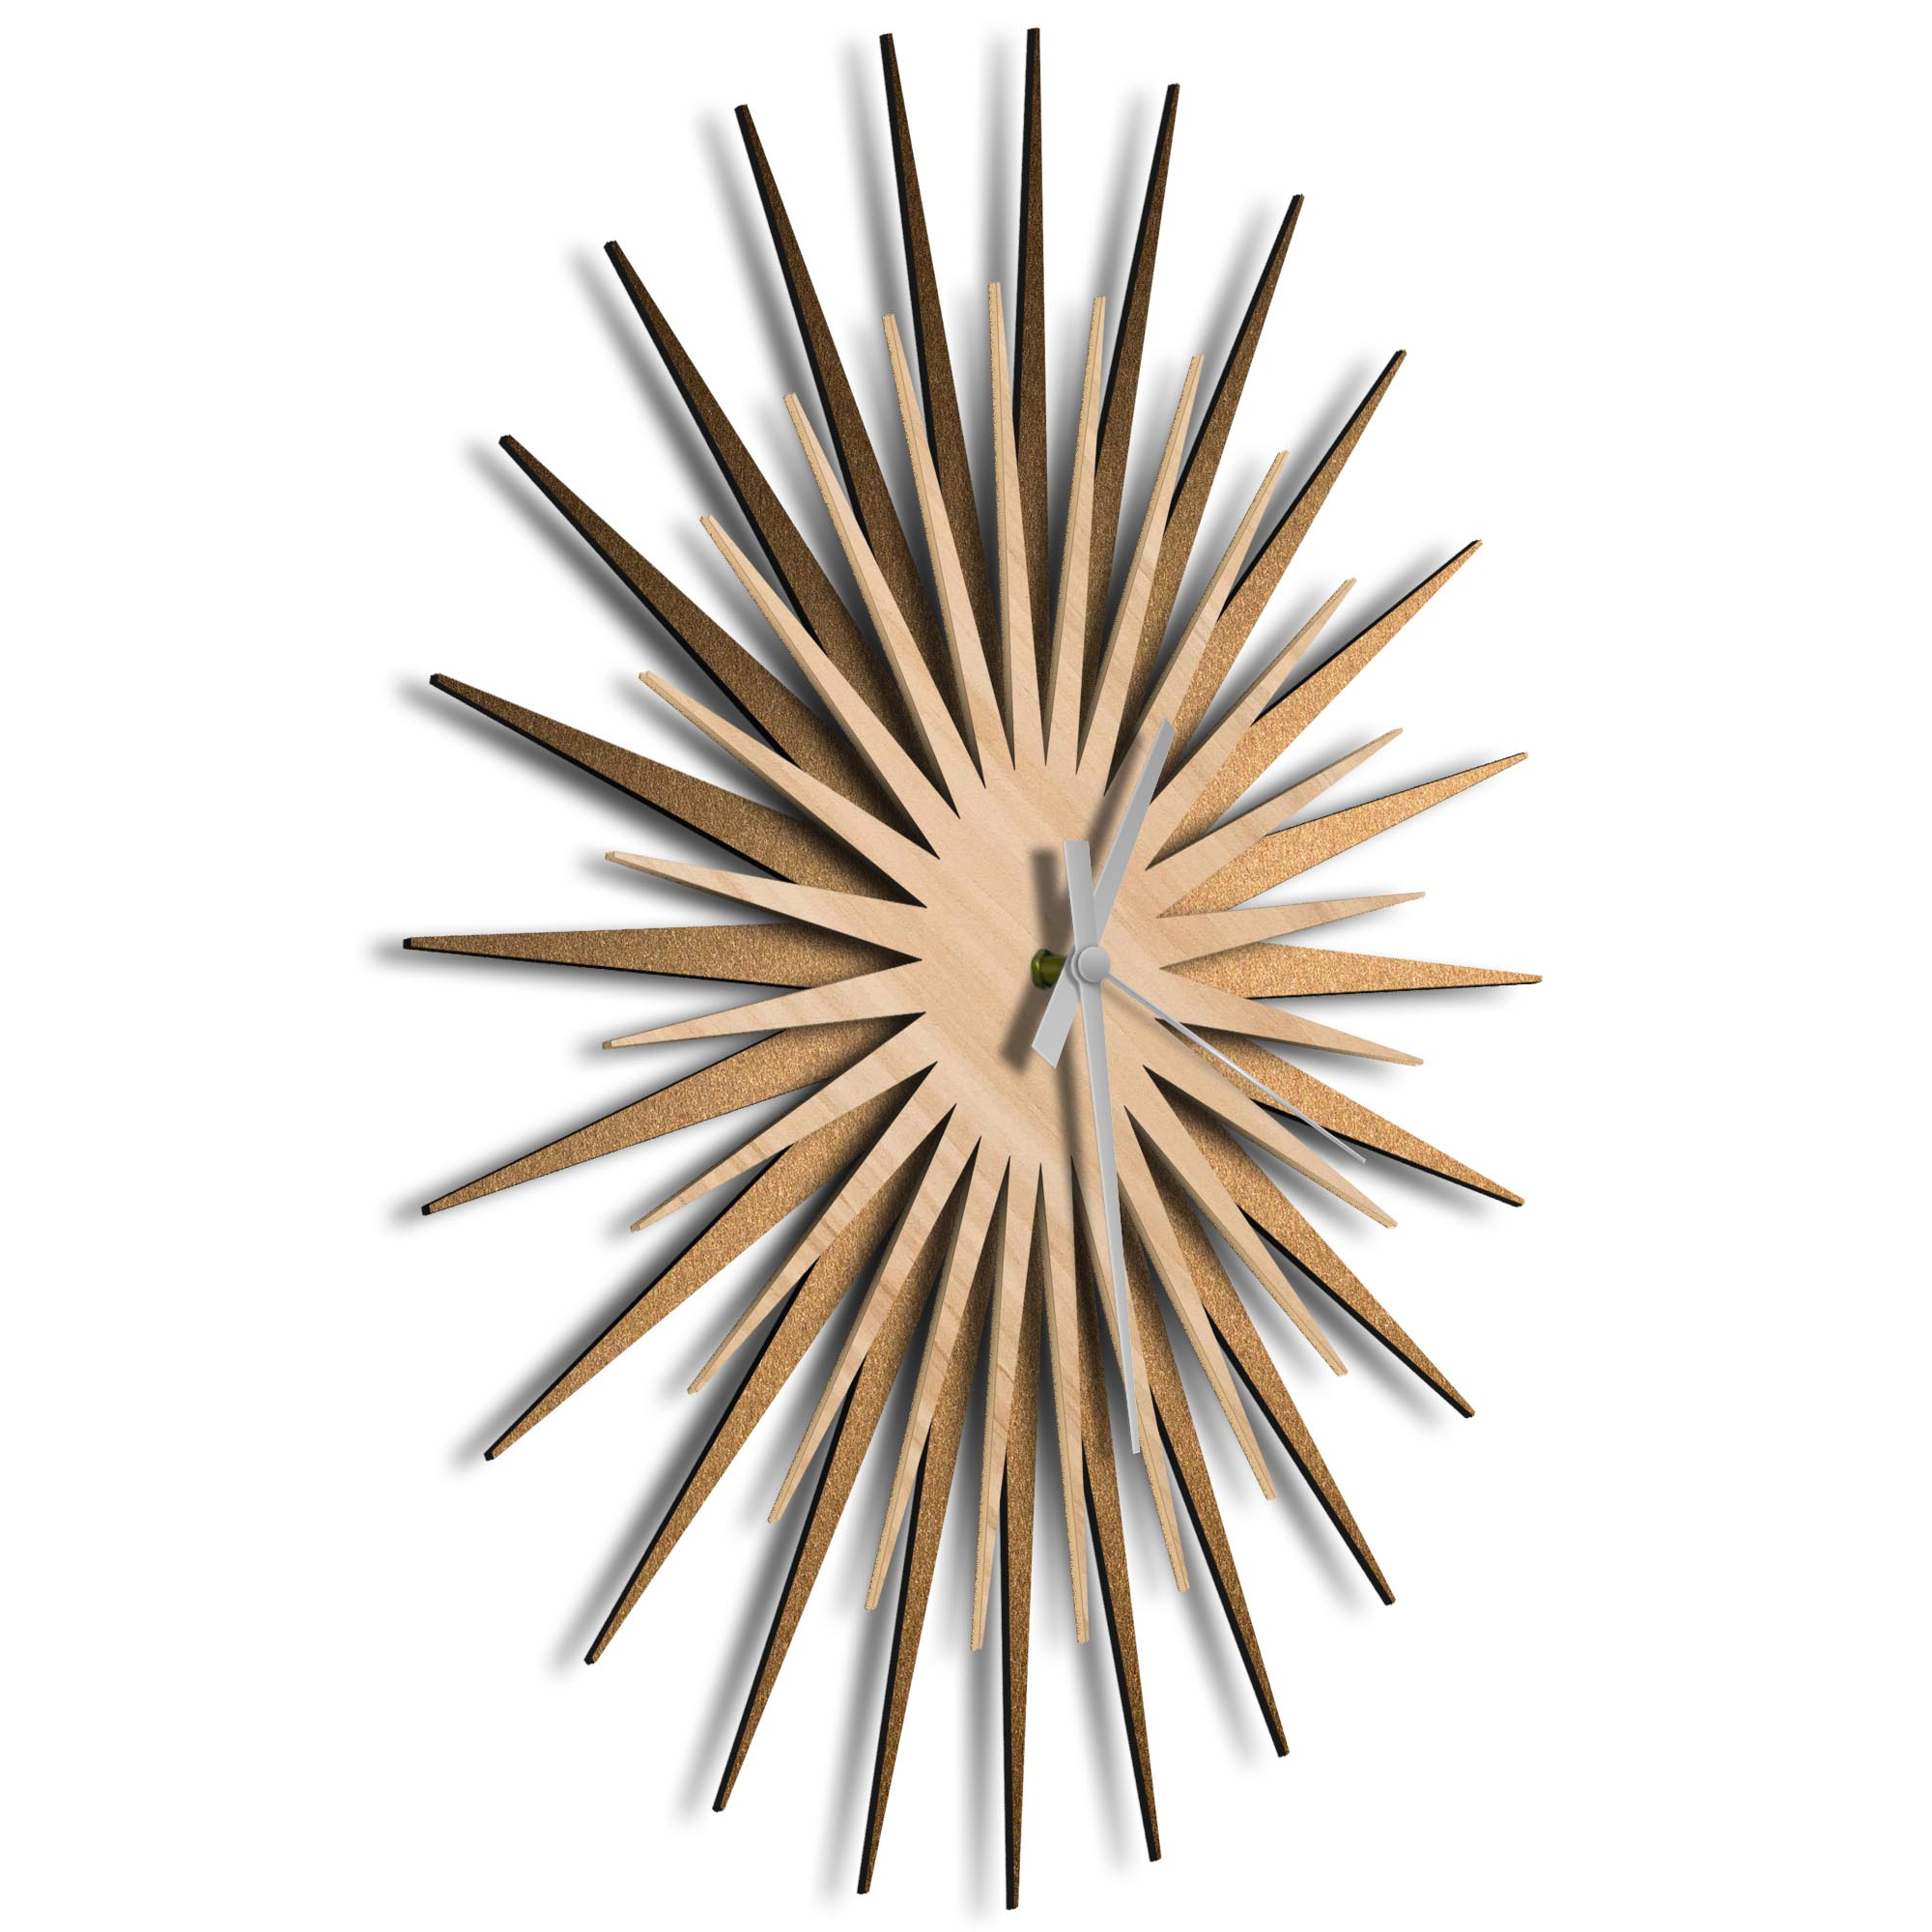 Atomic Era Clock Bronze Maple Grey by Adam Schwoeppe - Mid-Century Modern Clock on Brushed Bronze Polymetal - Image 2